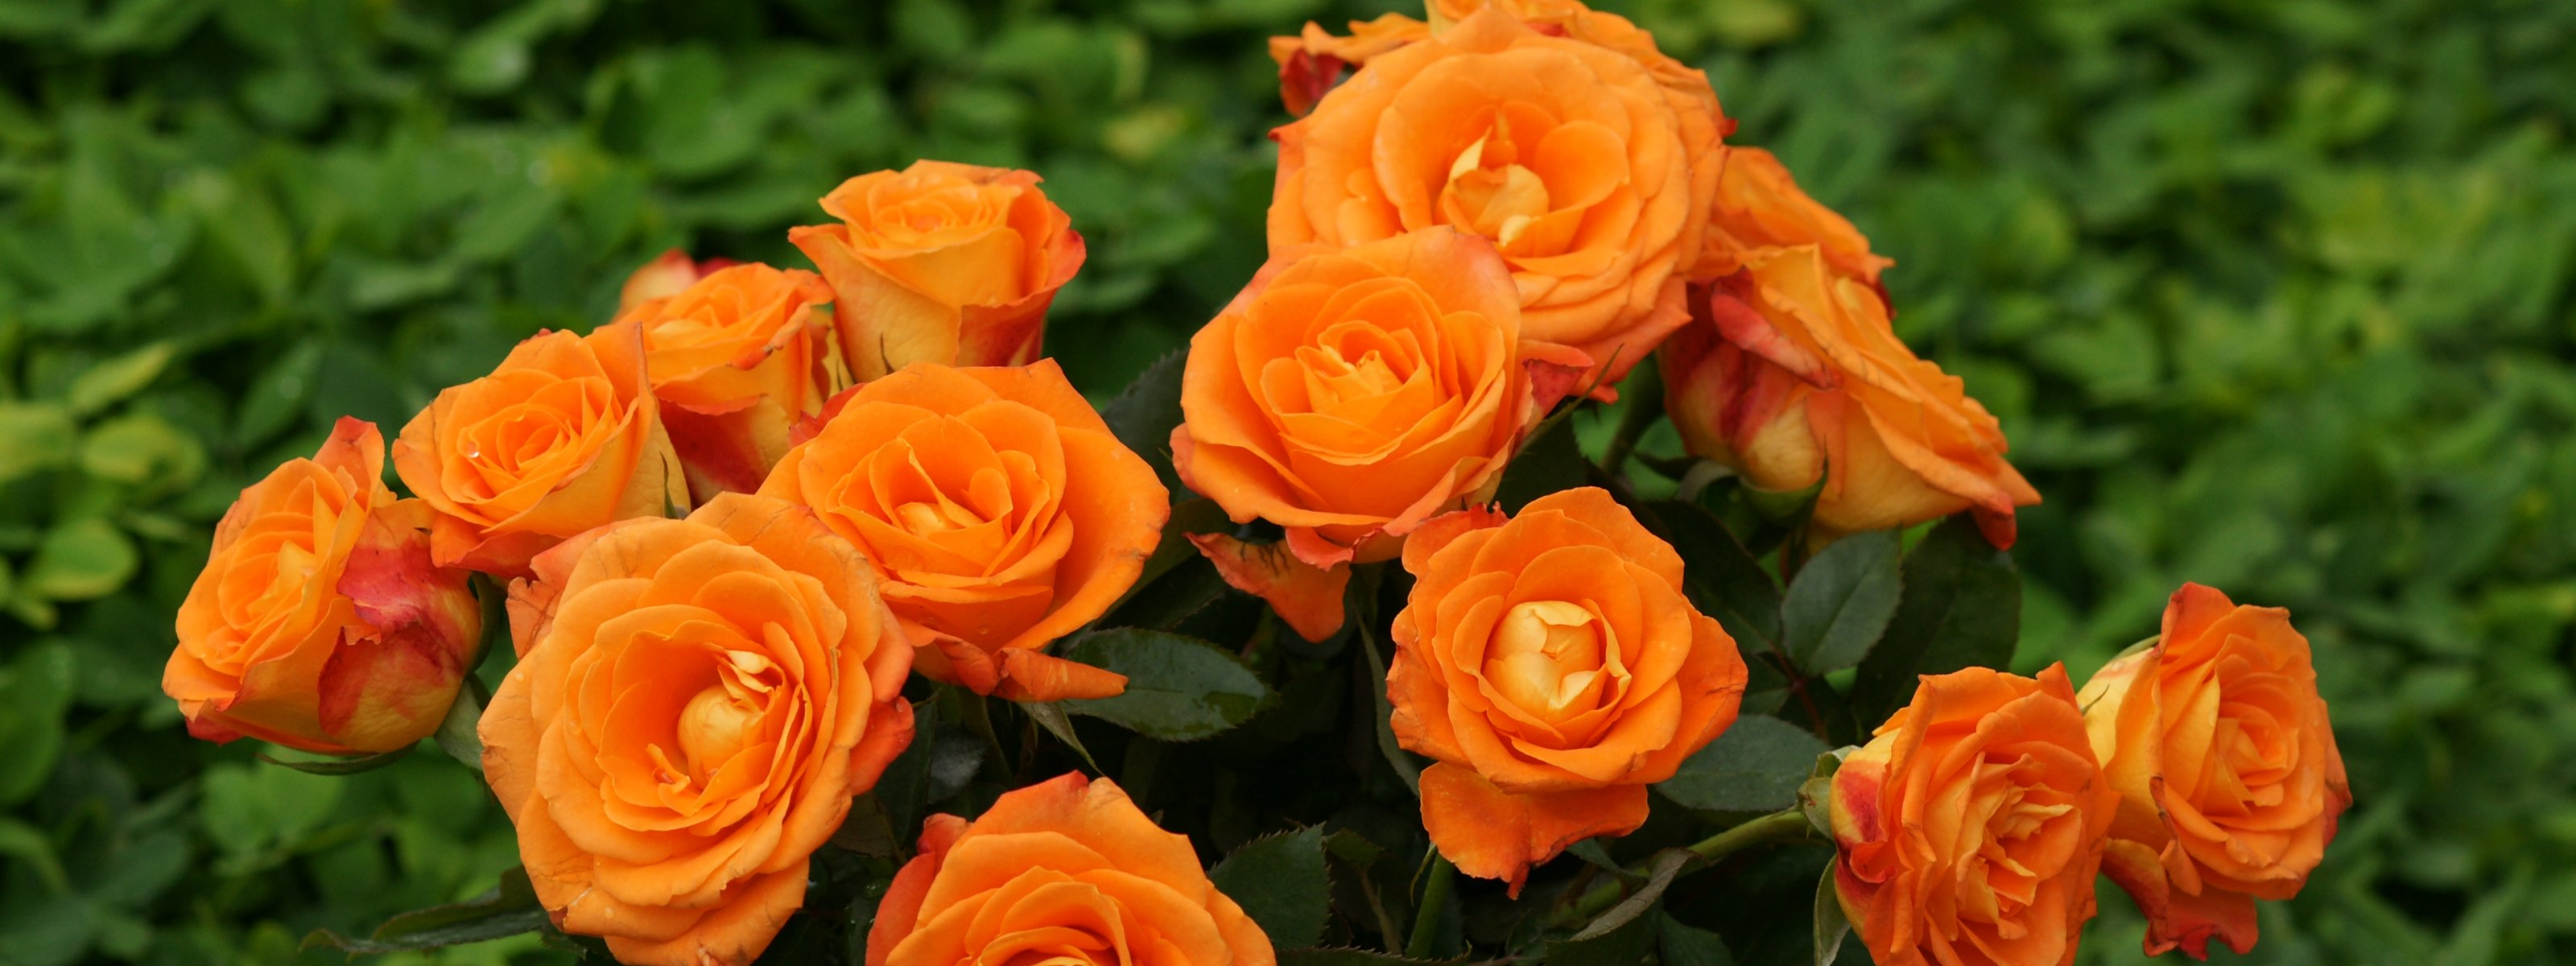 Orange roses - Dual screen wallpaperOrange Roses Wallpaper